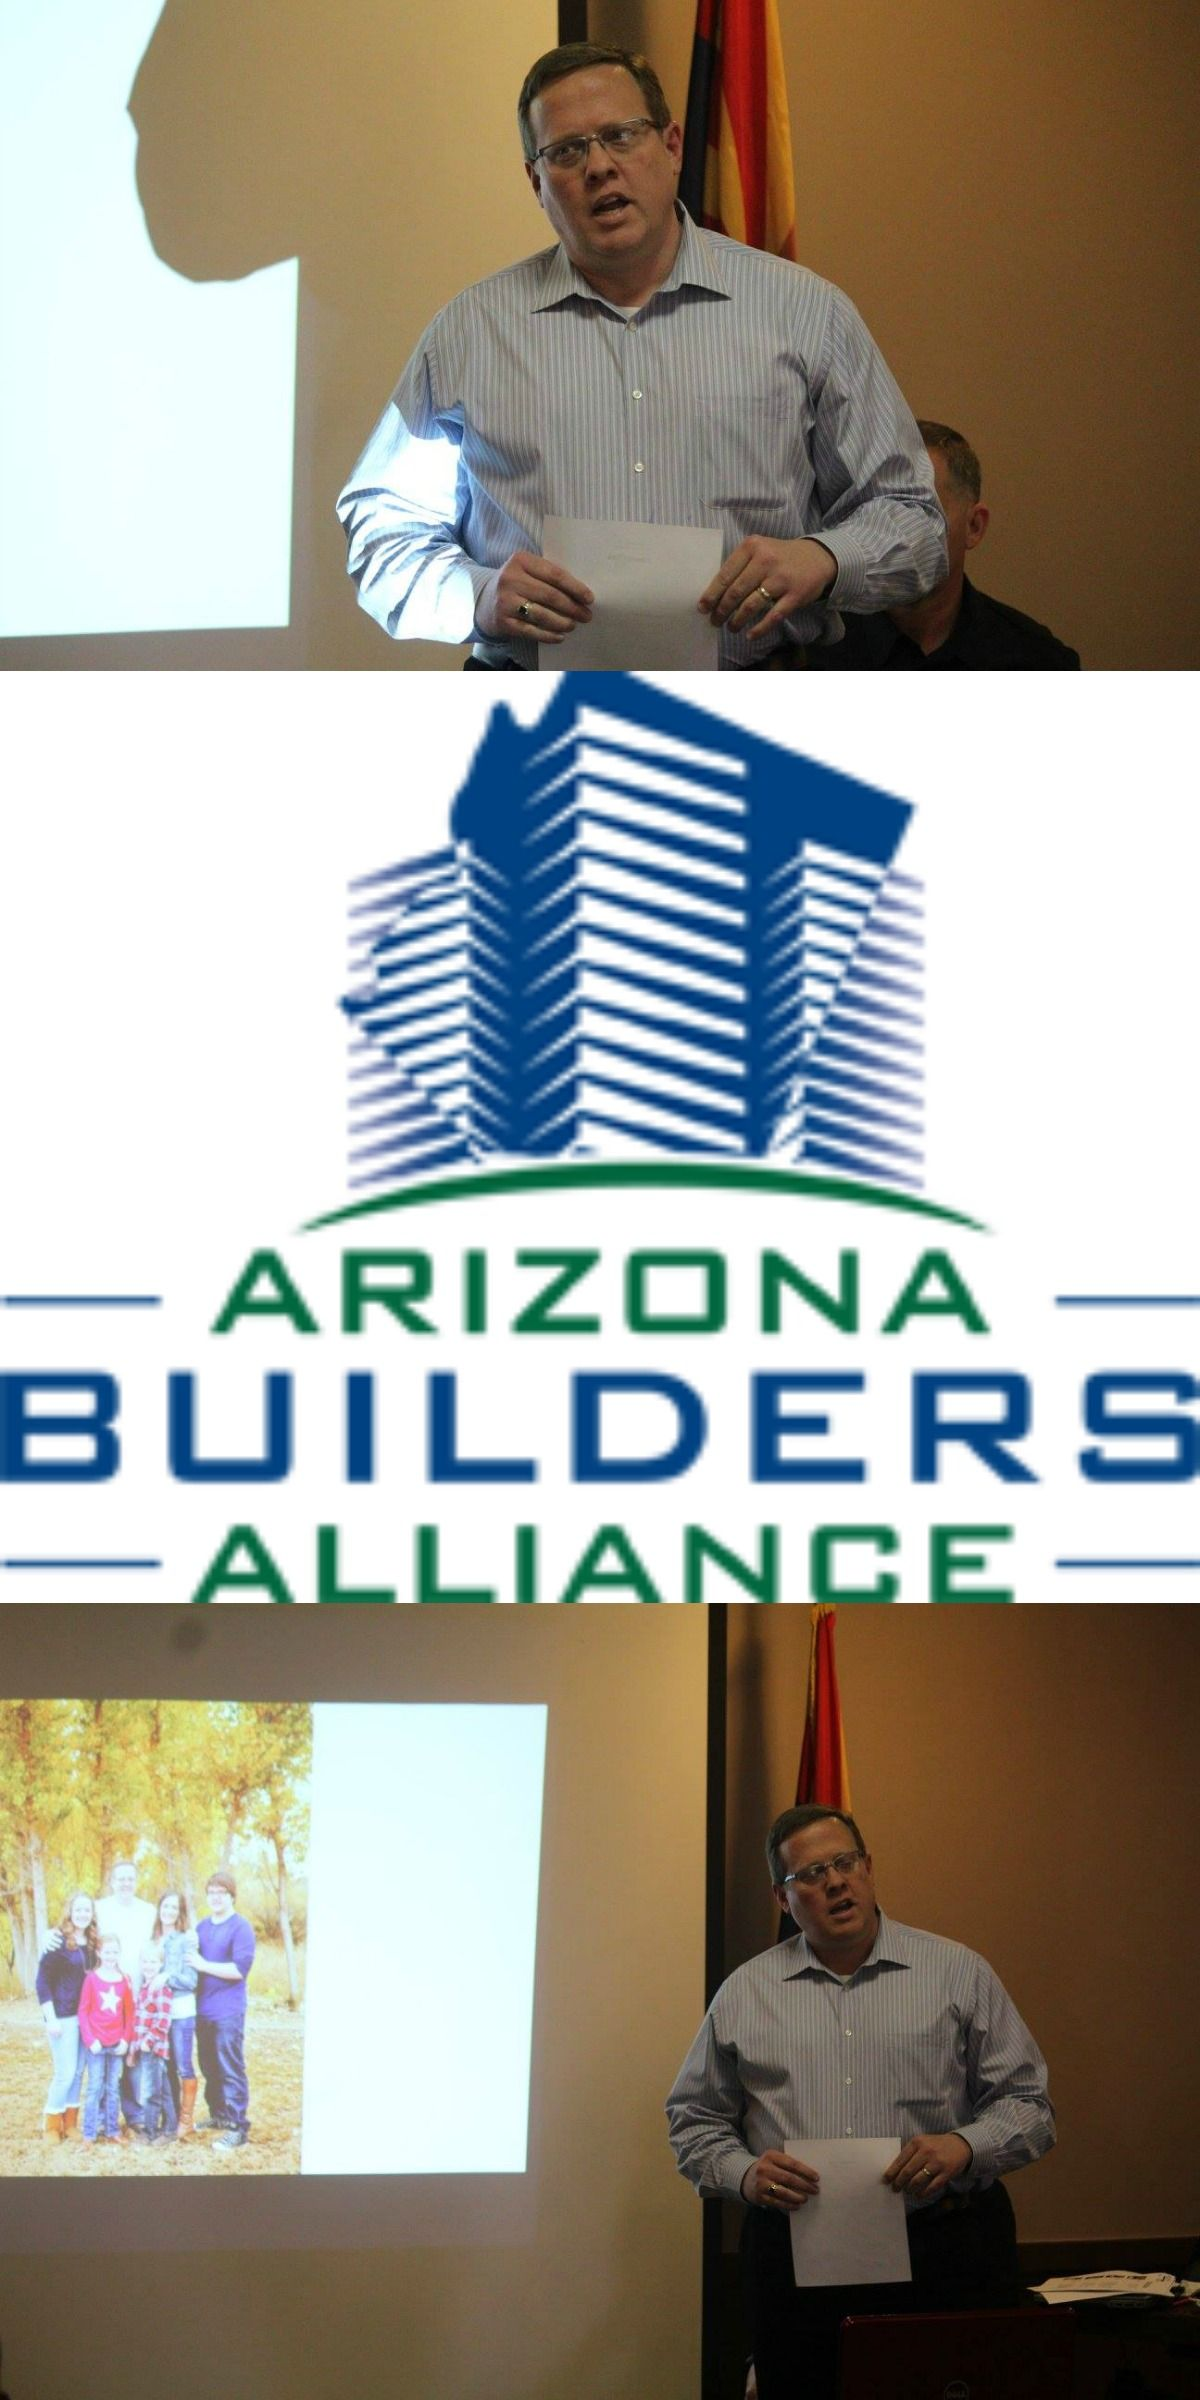 Tony Hakes presenting at The Arizona Builders Alliance